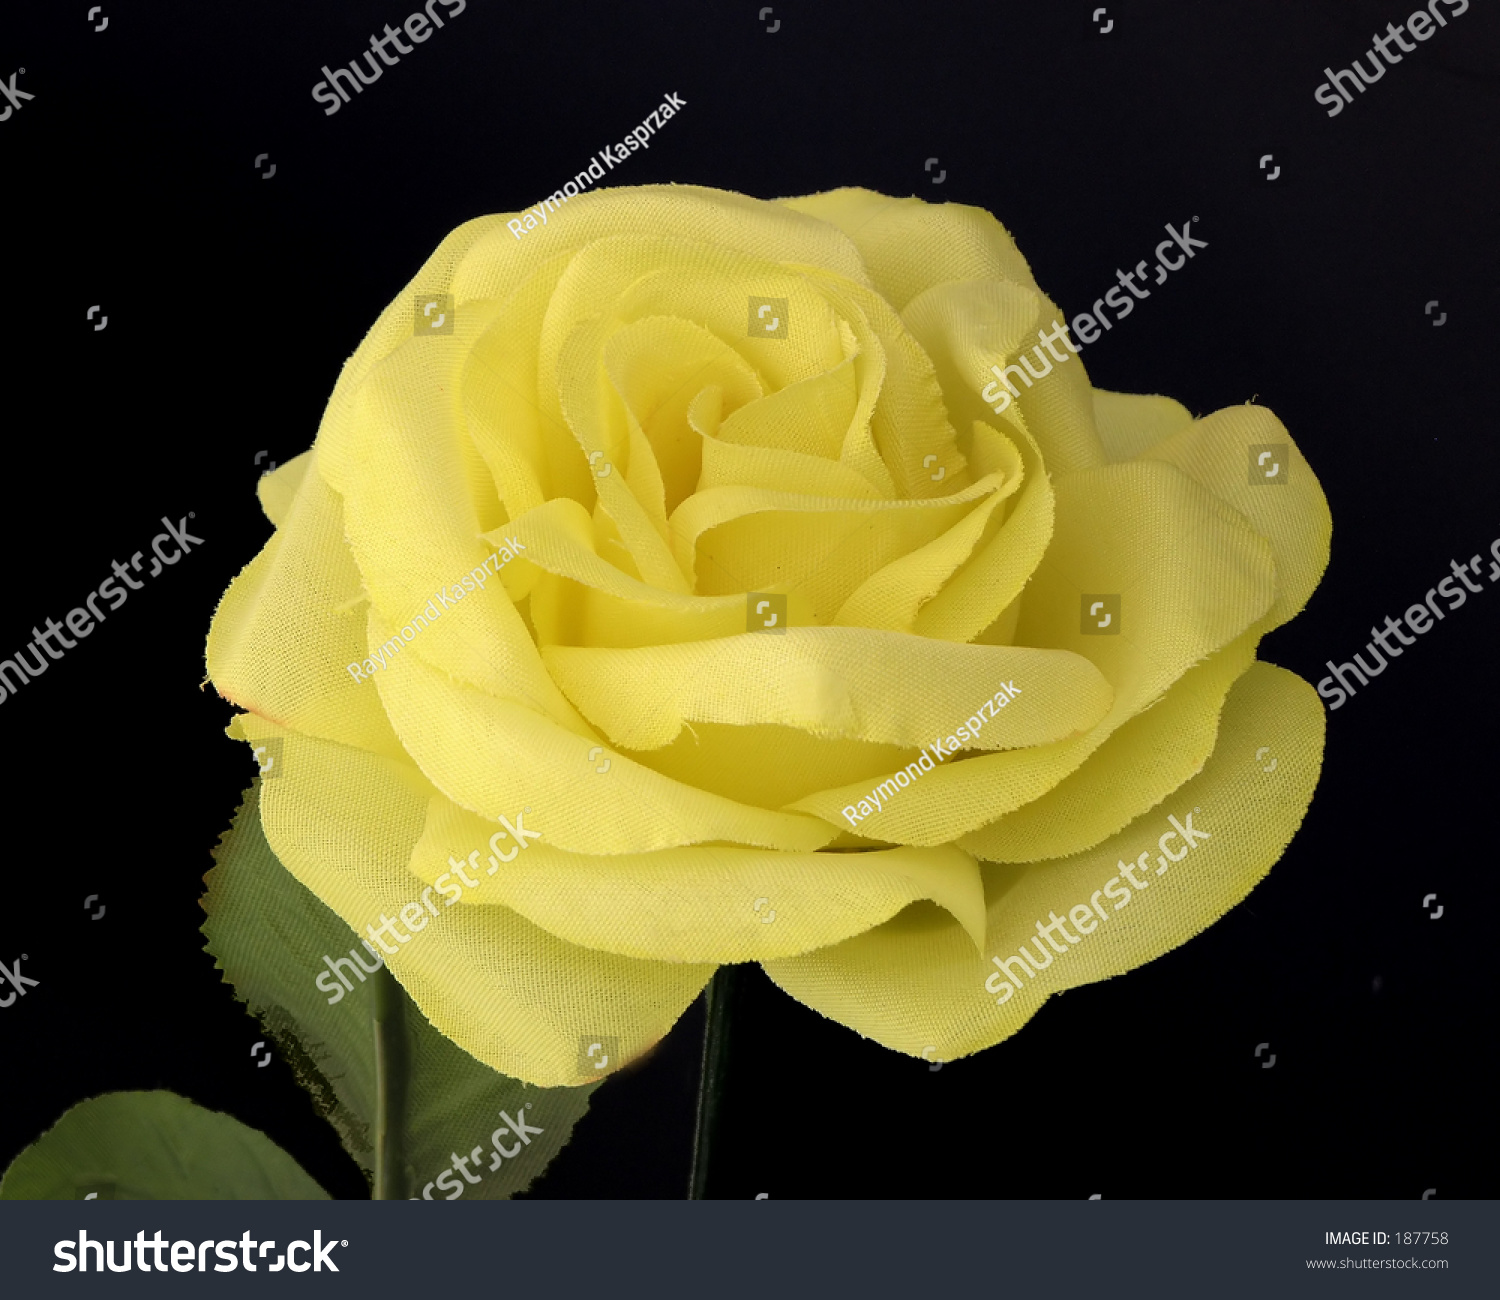 rosebush black singles Meet singles over 50 in mount pleasant are you searching for a someone single over 50 to commit your attention to or are you just trying to find a new friend to go watch a ball game with at the park or local pub tomorrow.